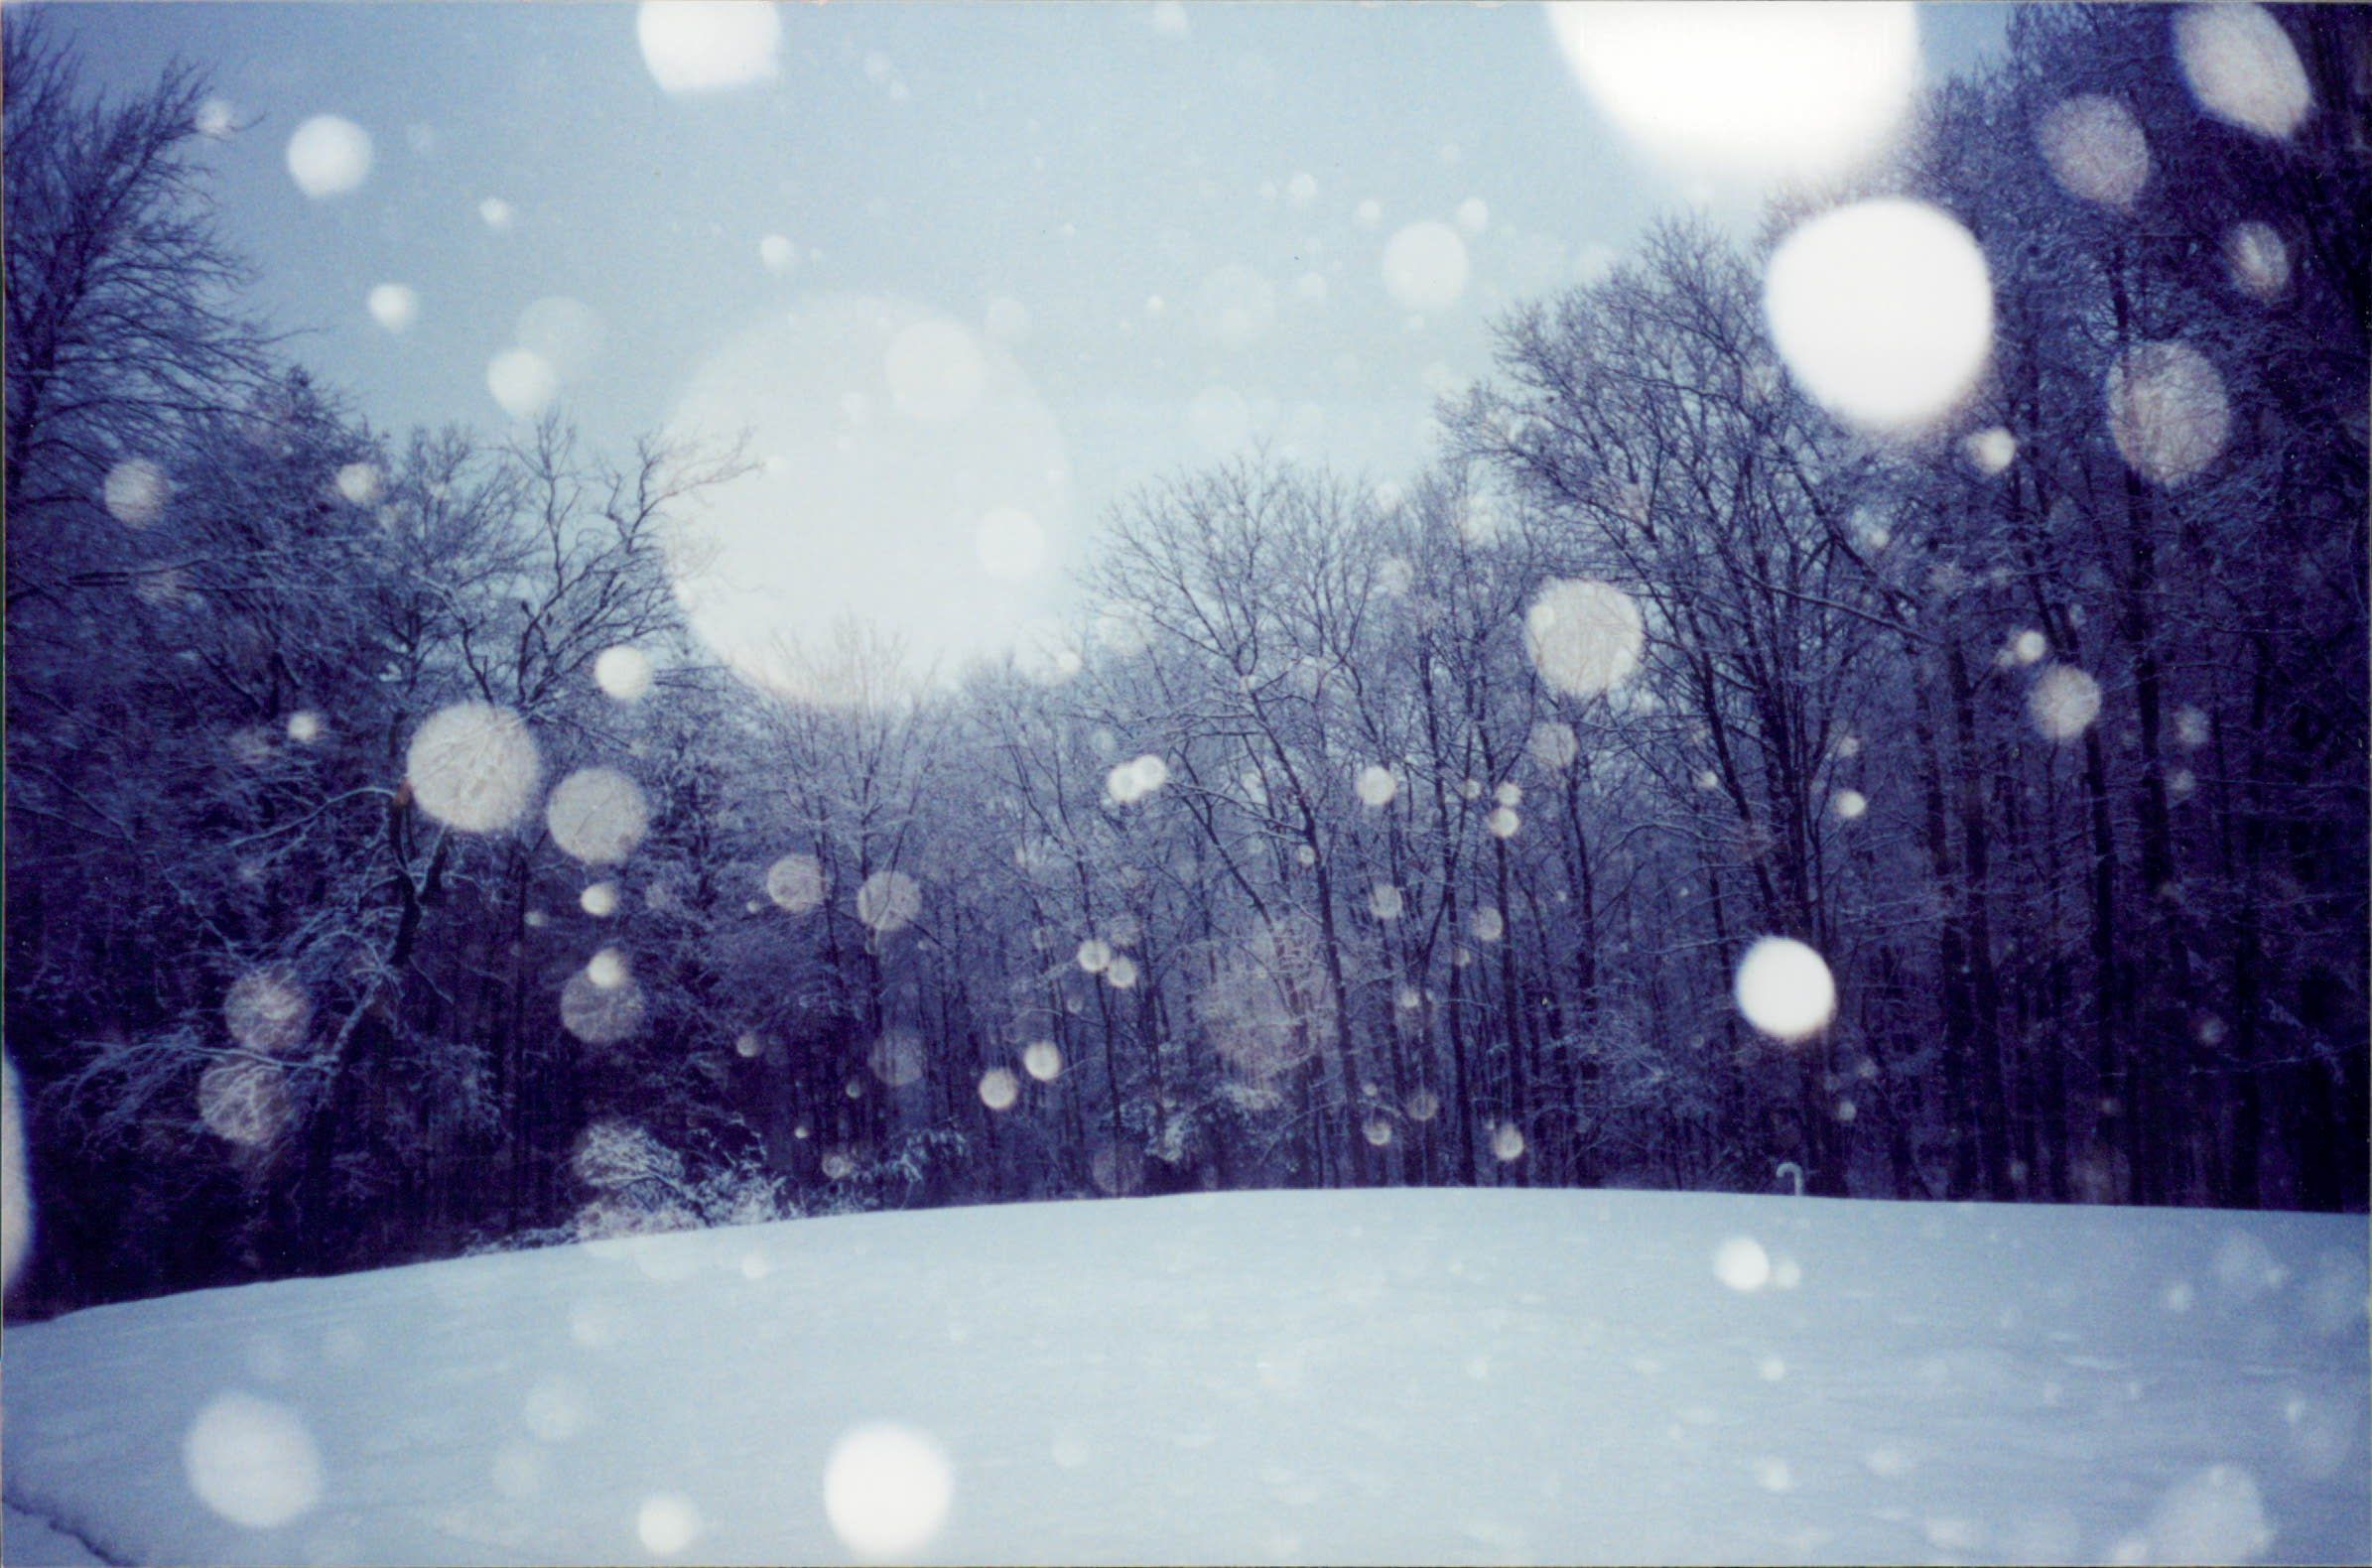 Snowflakes hitting the camera lens on a winter's day. Massachusetts. photo by Steve Golse.